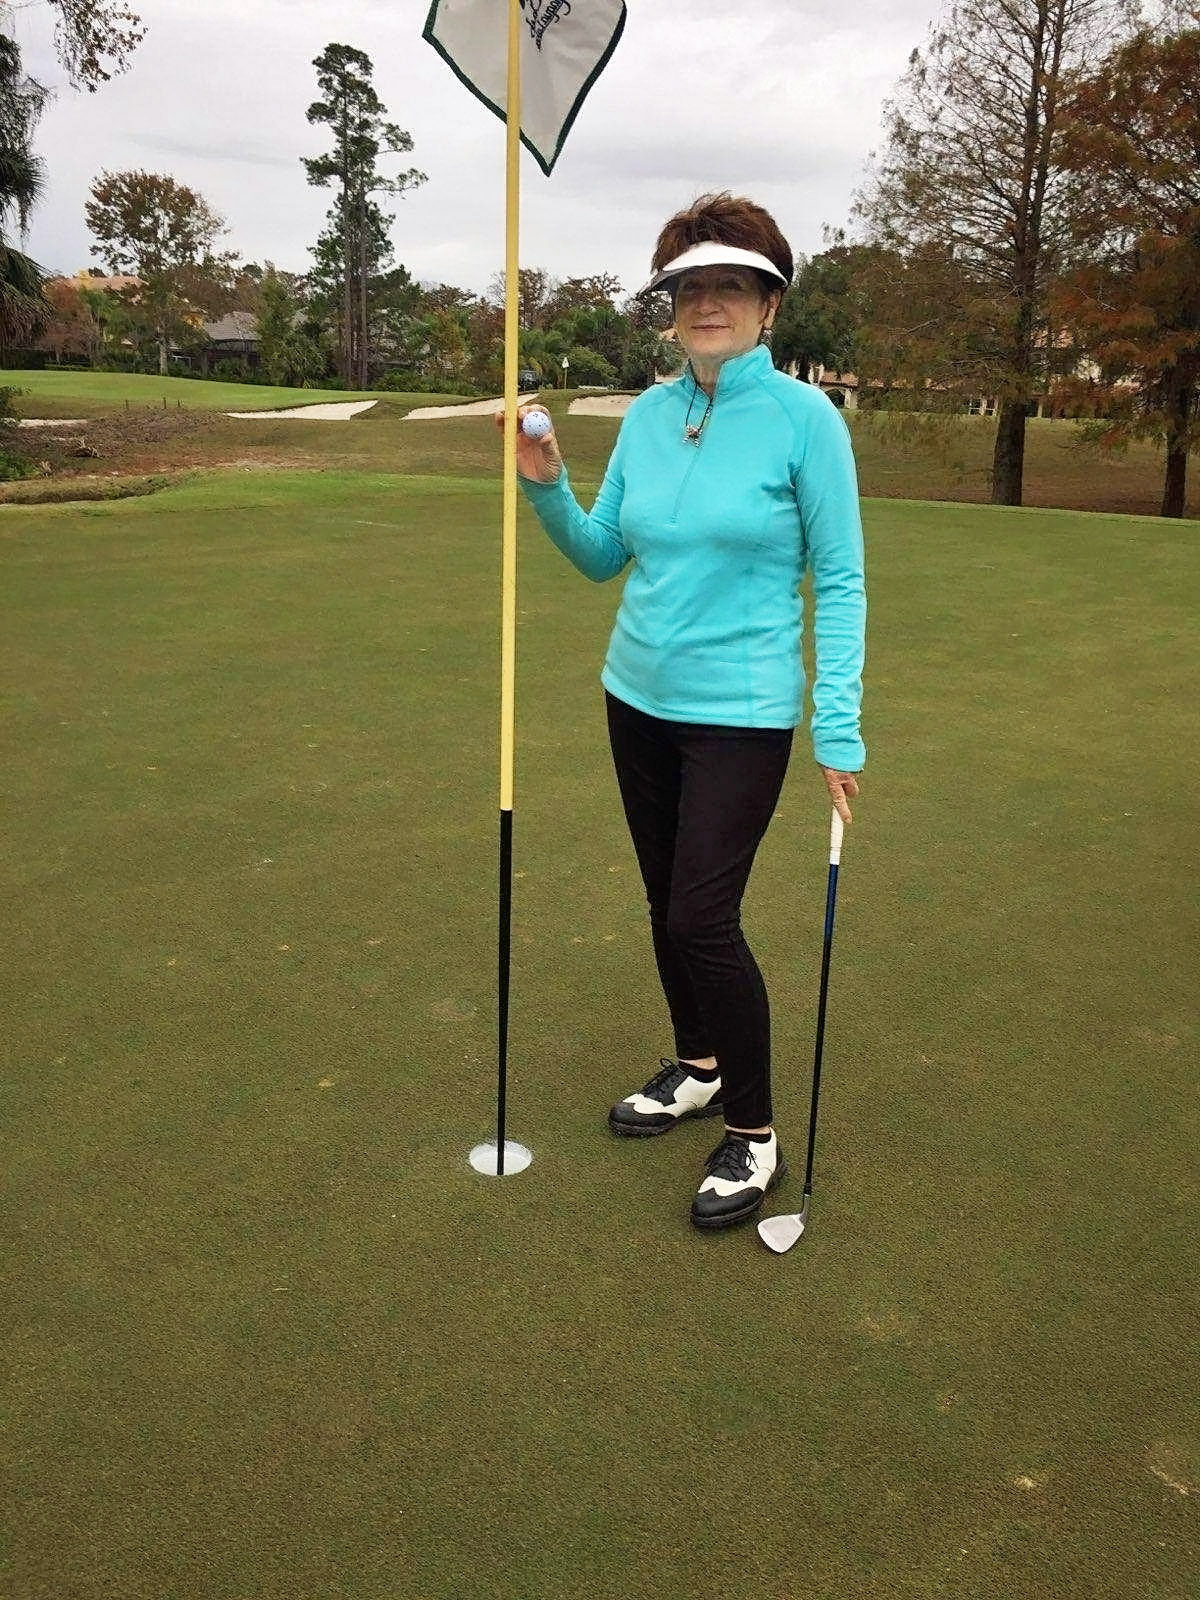 Jane Farmer Hole in One